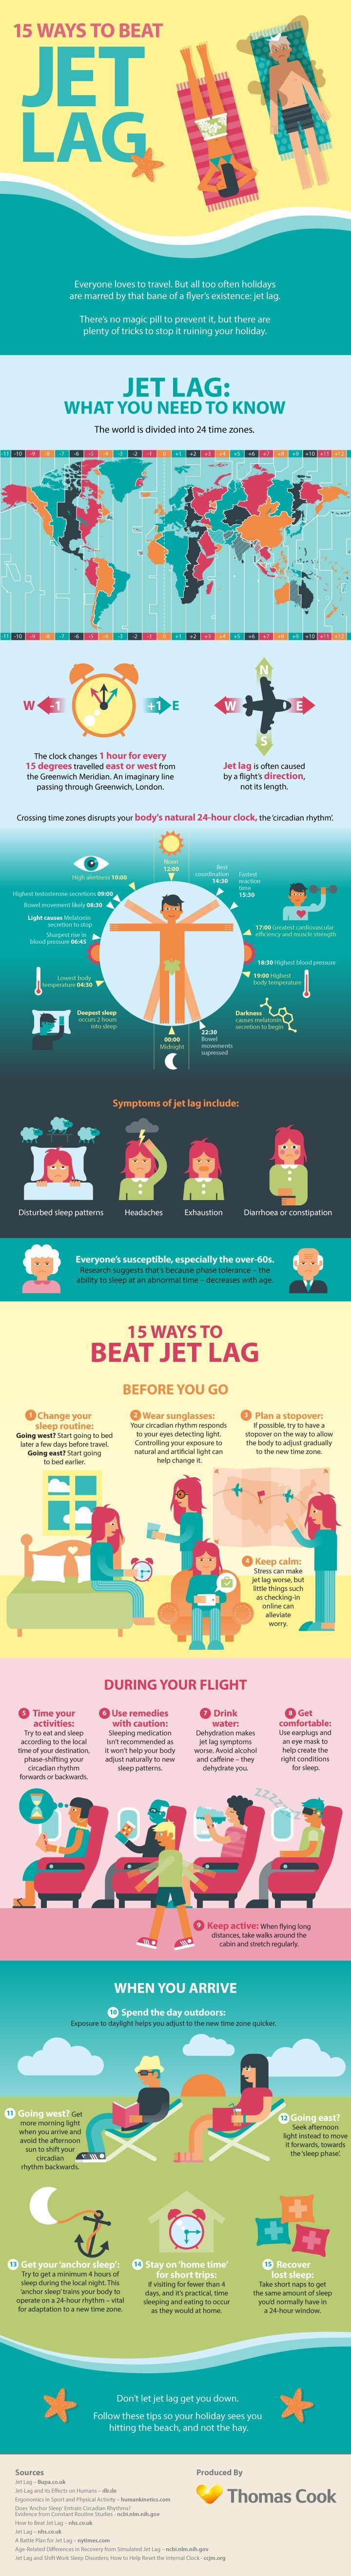 How to beat jetlag?  Here are some great tips to get over bad jetlag!